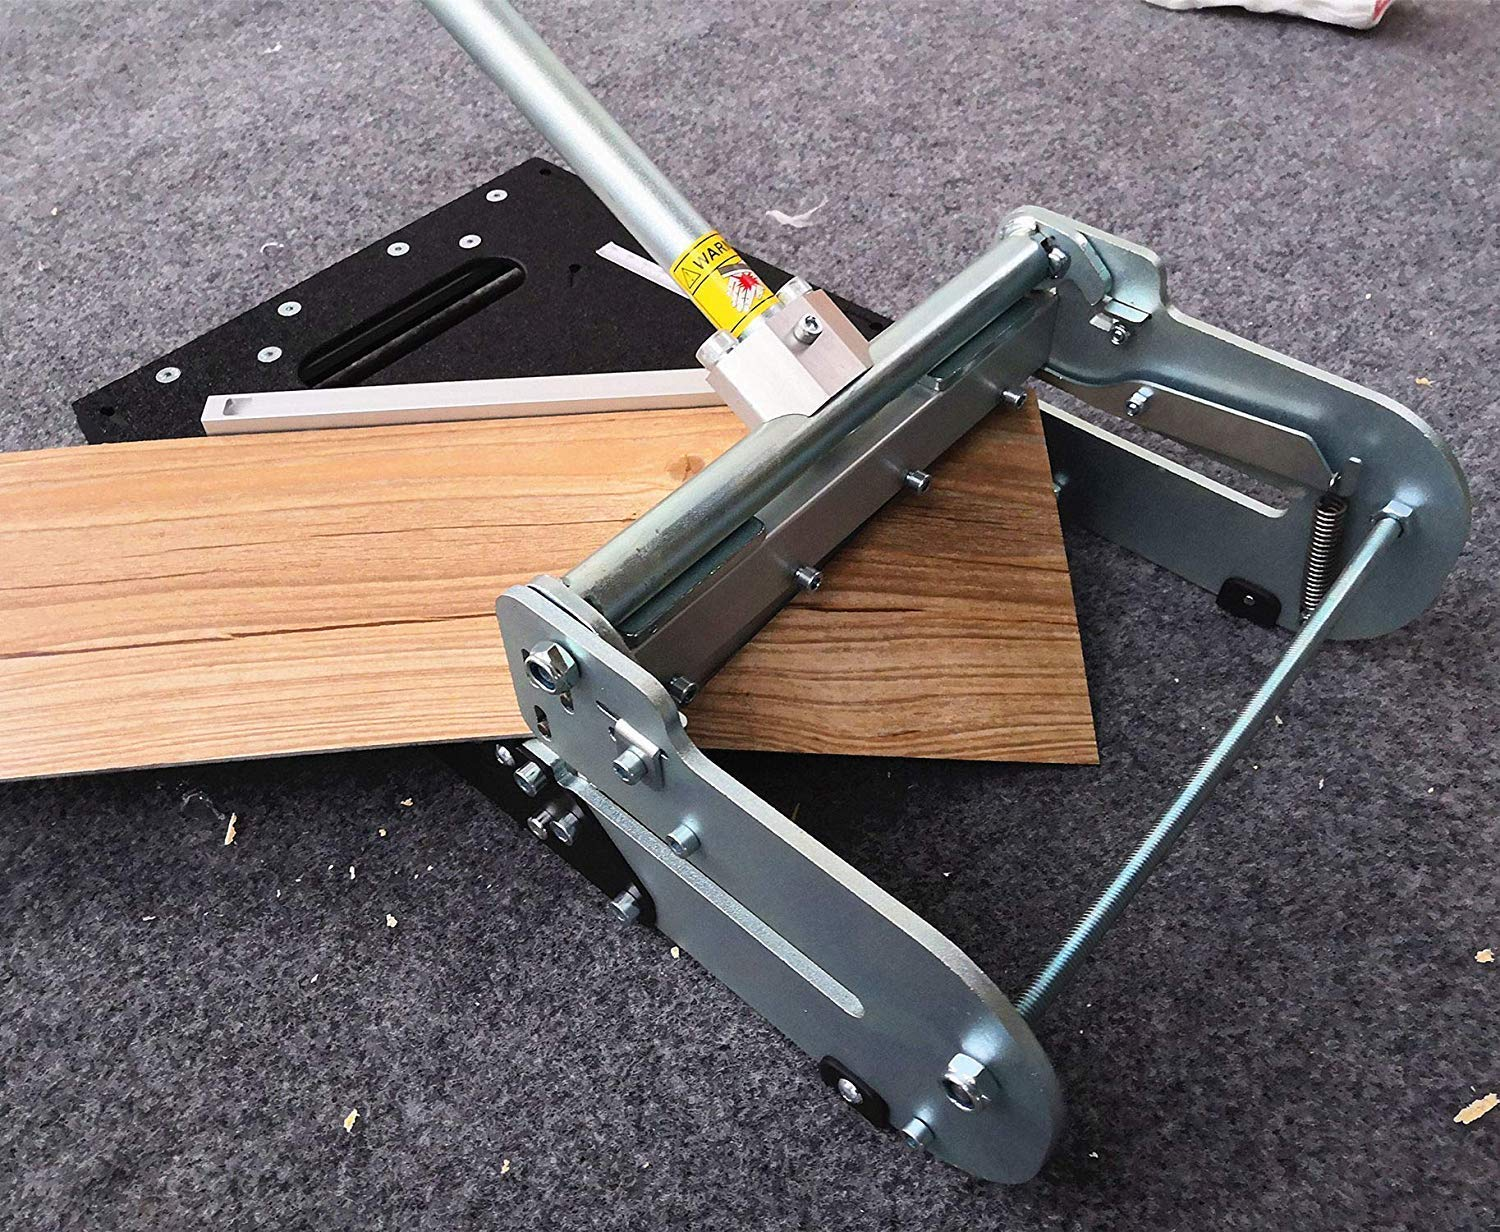 9-inch Vinyl flooring Cutter LVP-230; 9inch cutting width and 7 mm thick! best buy for cutting vinyl flooring! by MANTISTOL (Image #4)